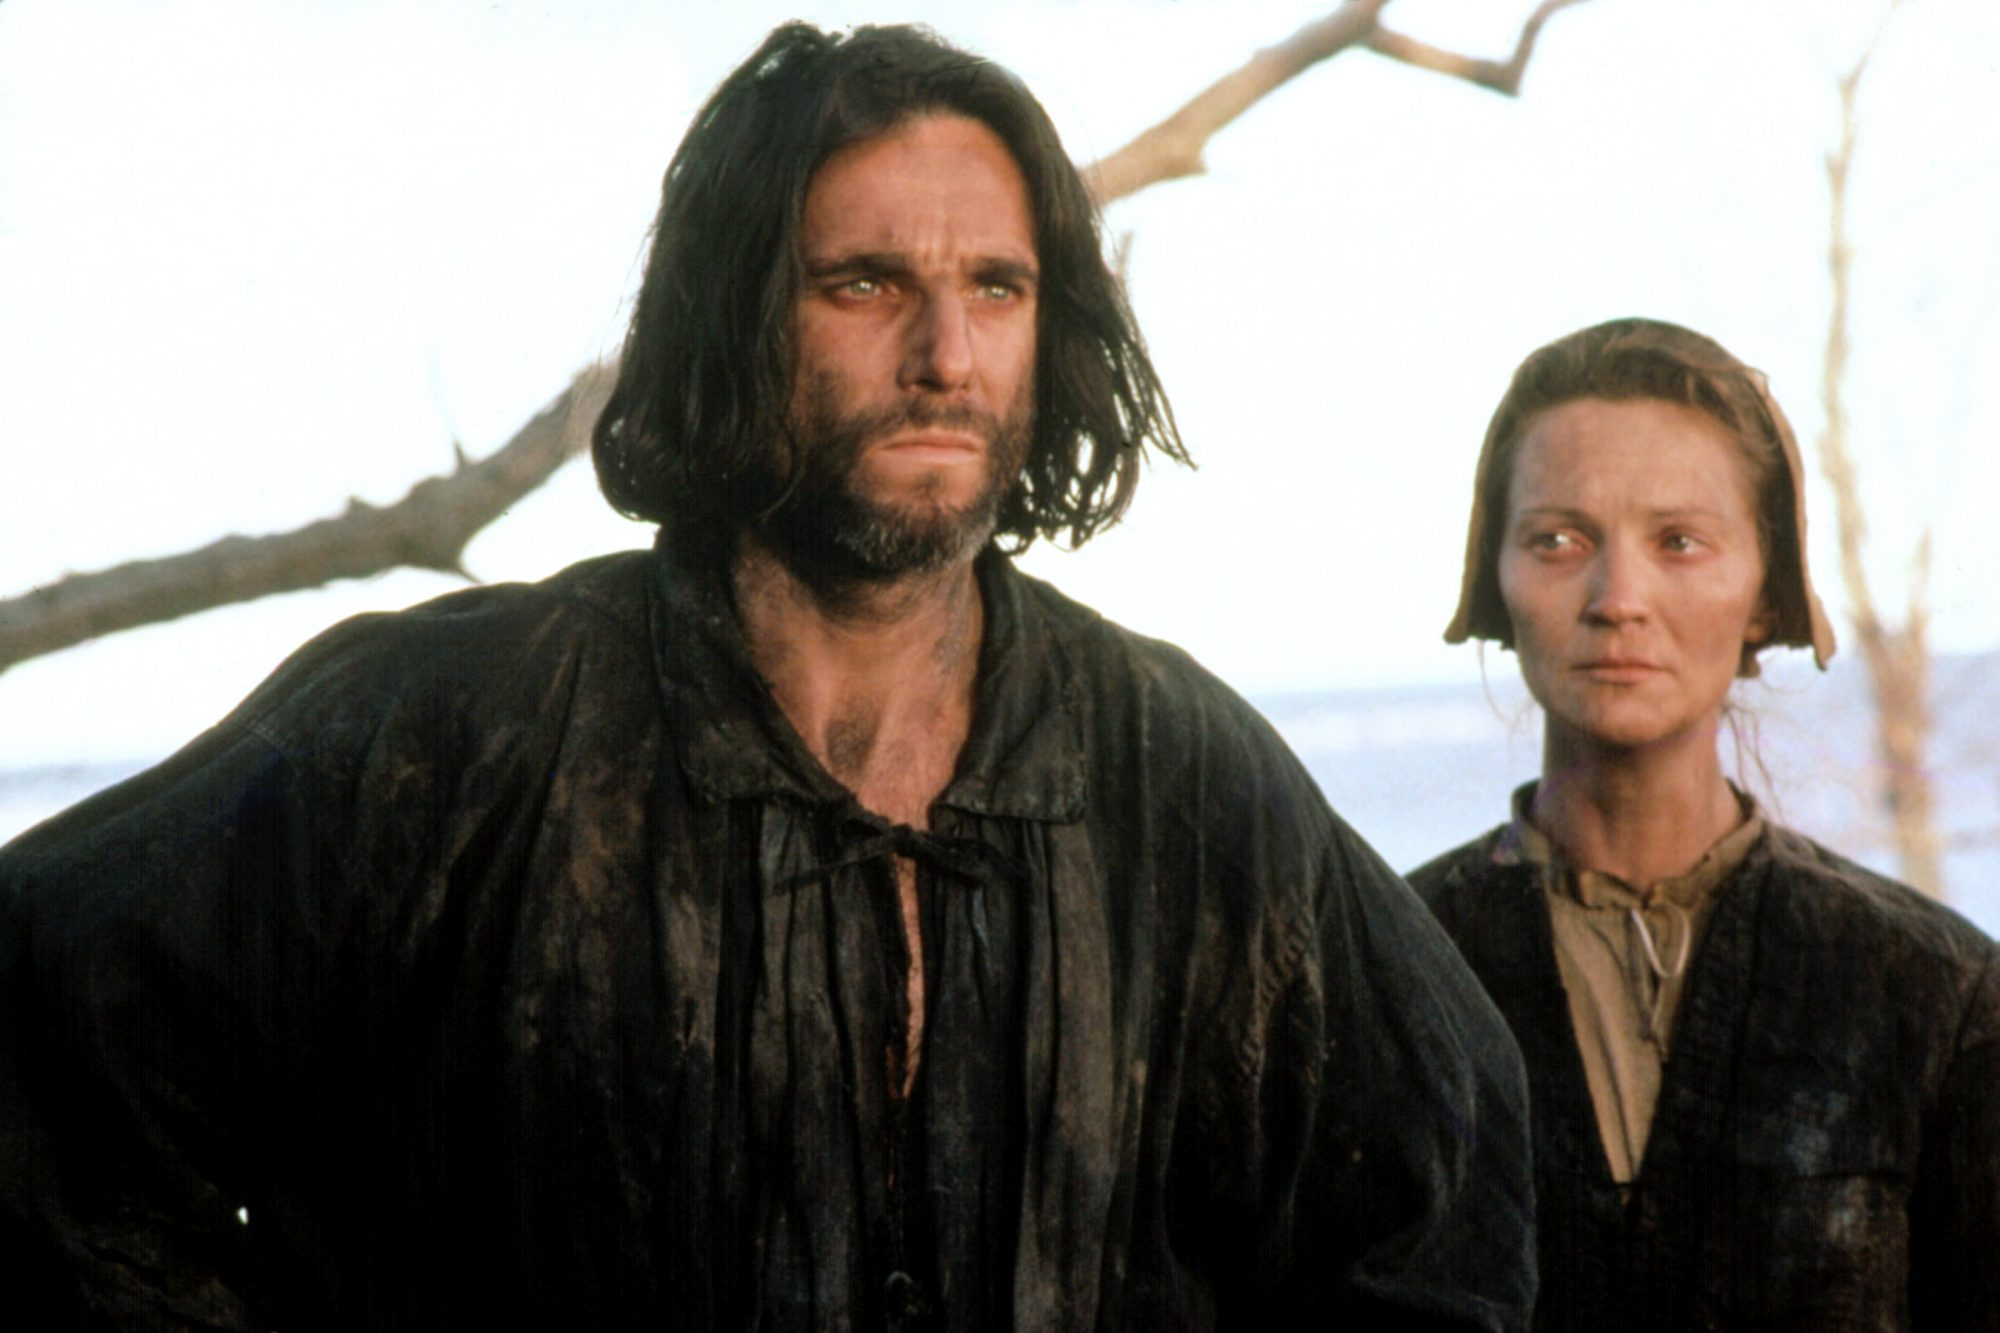 THE CRUCIBLE, Daniel Day-Lewis, Joan Allen, 1996, TM and Copyright © 20th Century Fox Film Corp. All